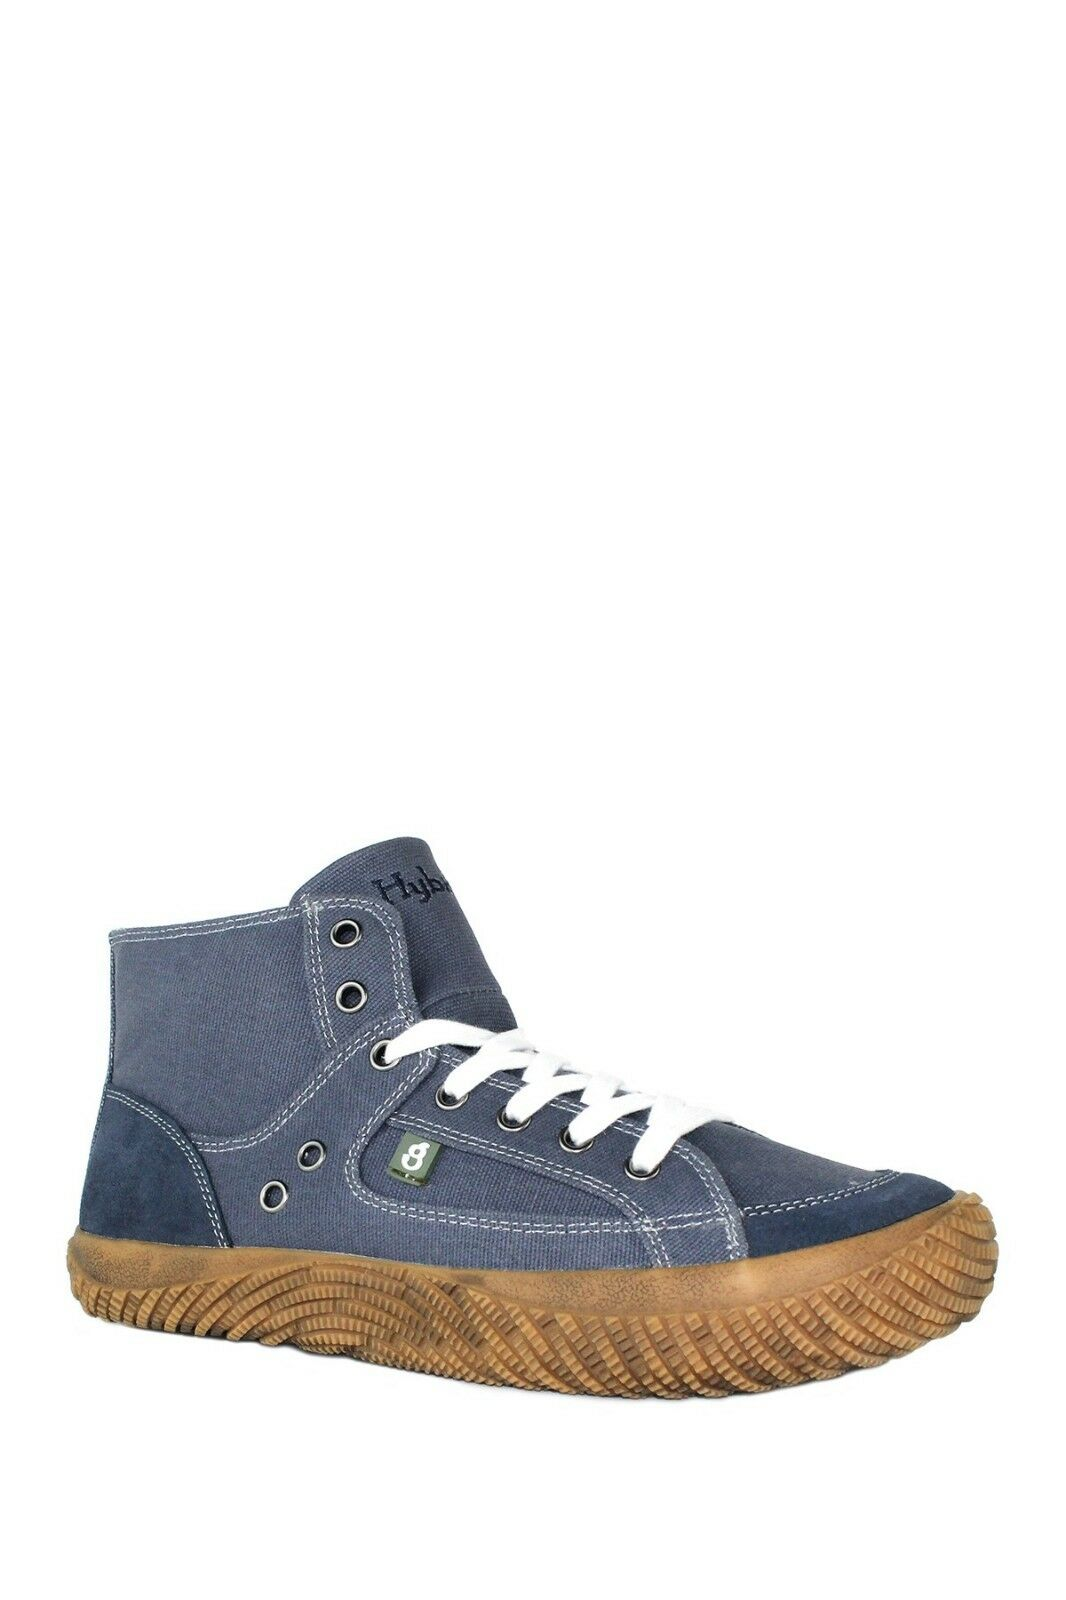 Hybrid Green Label shoes Size US MEN 7 Navy NEW IN BOX Fearless High-Top Sneaker